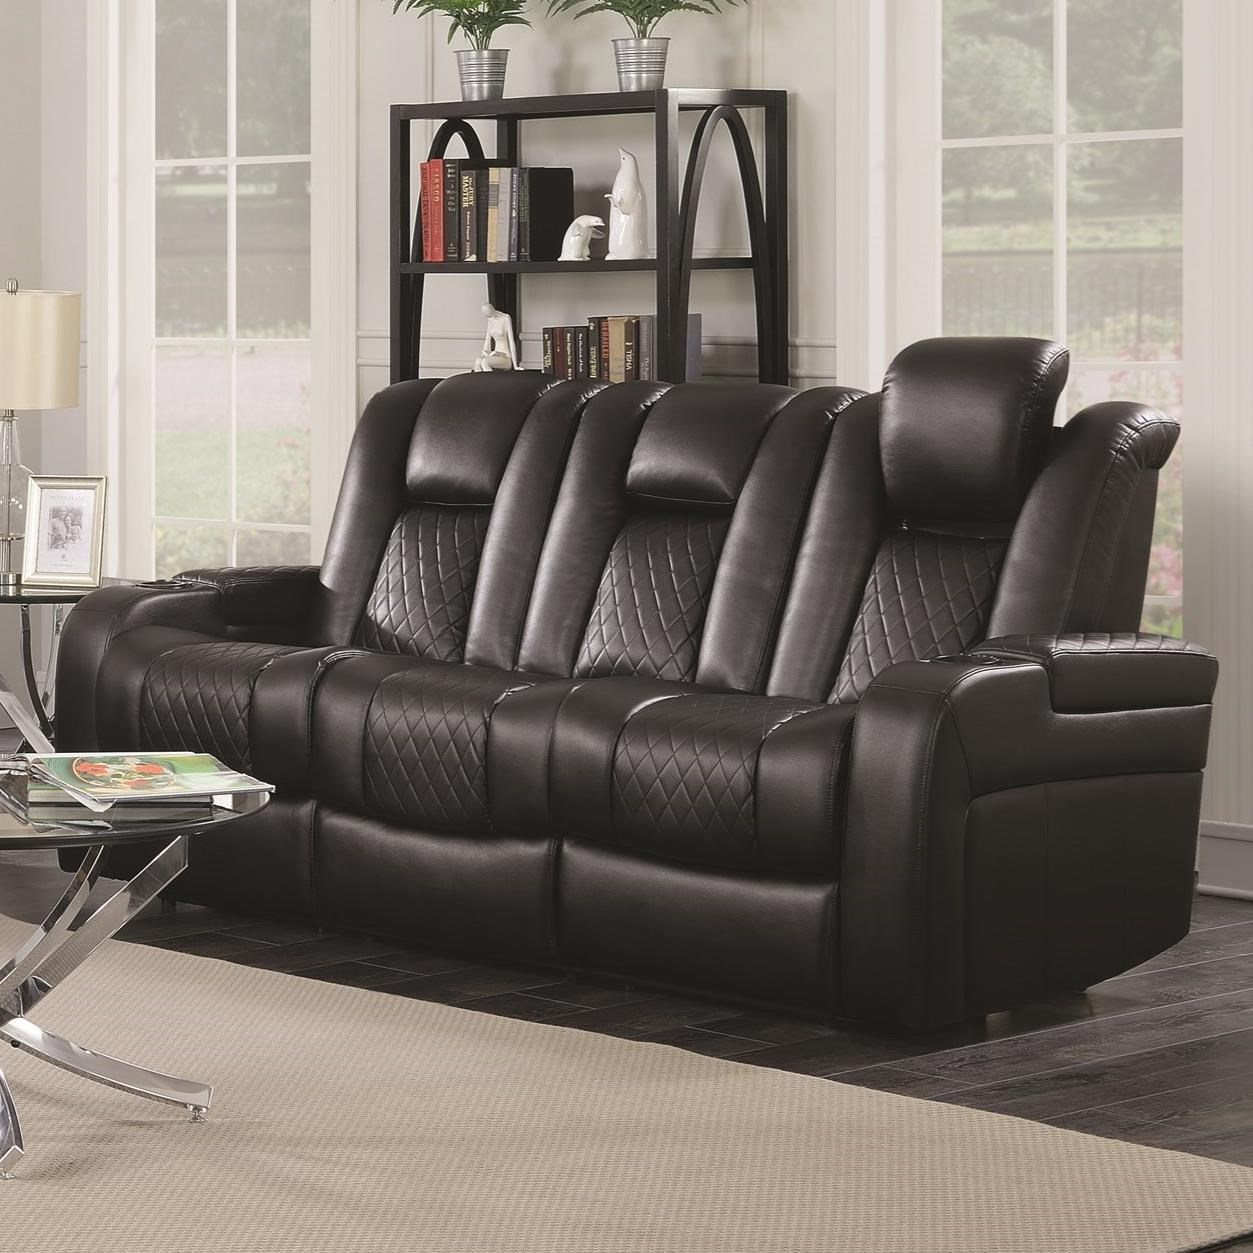 Delangelo Power Reclining Sofa by Coaster at Northeast Factory Direct